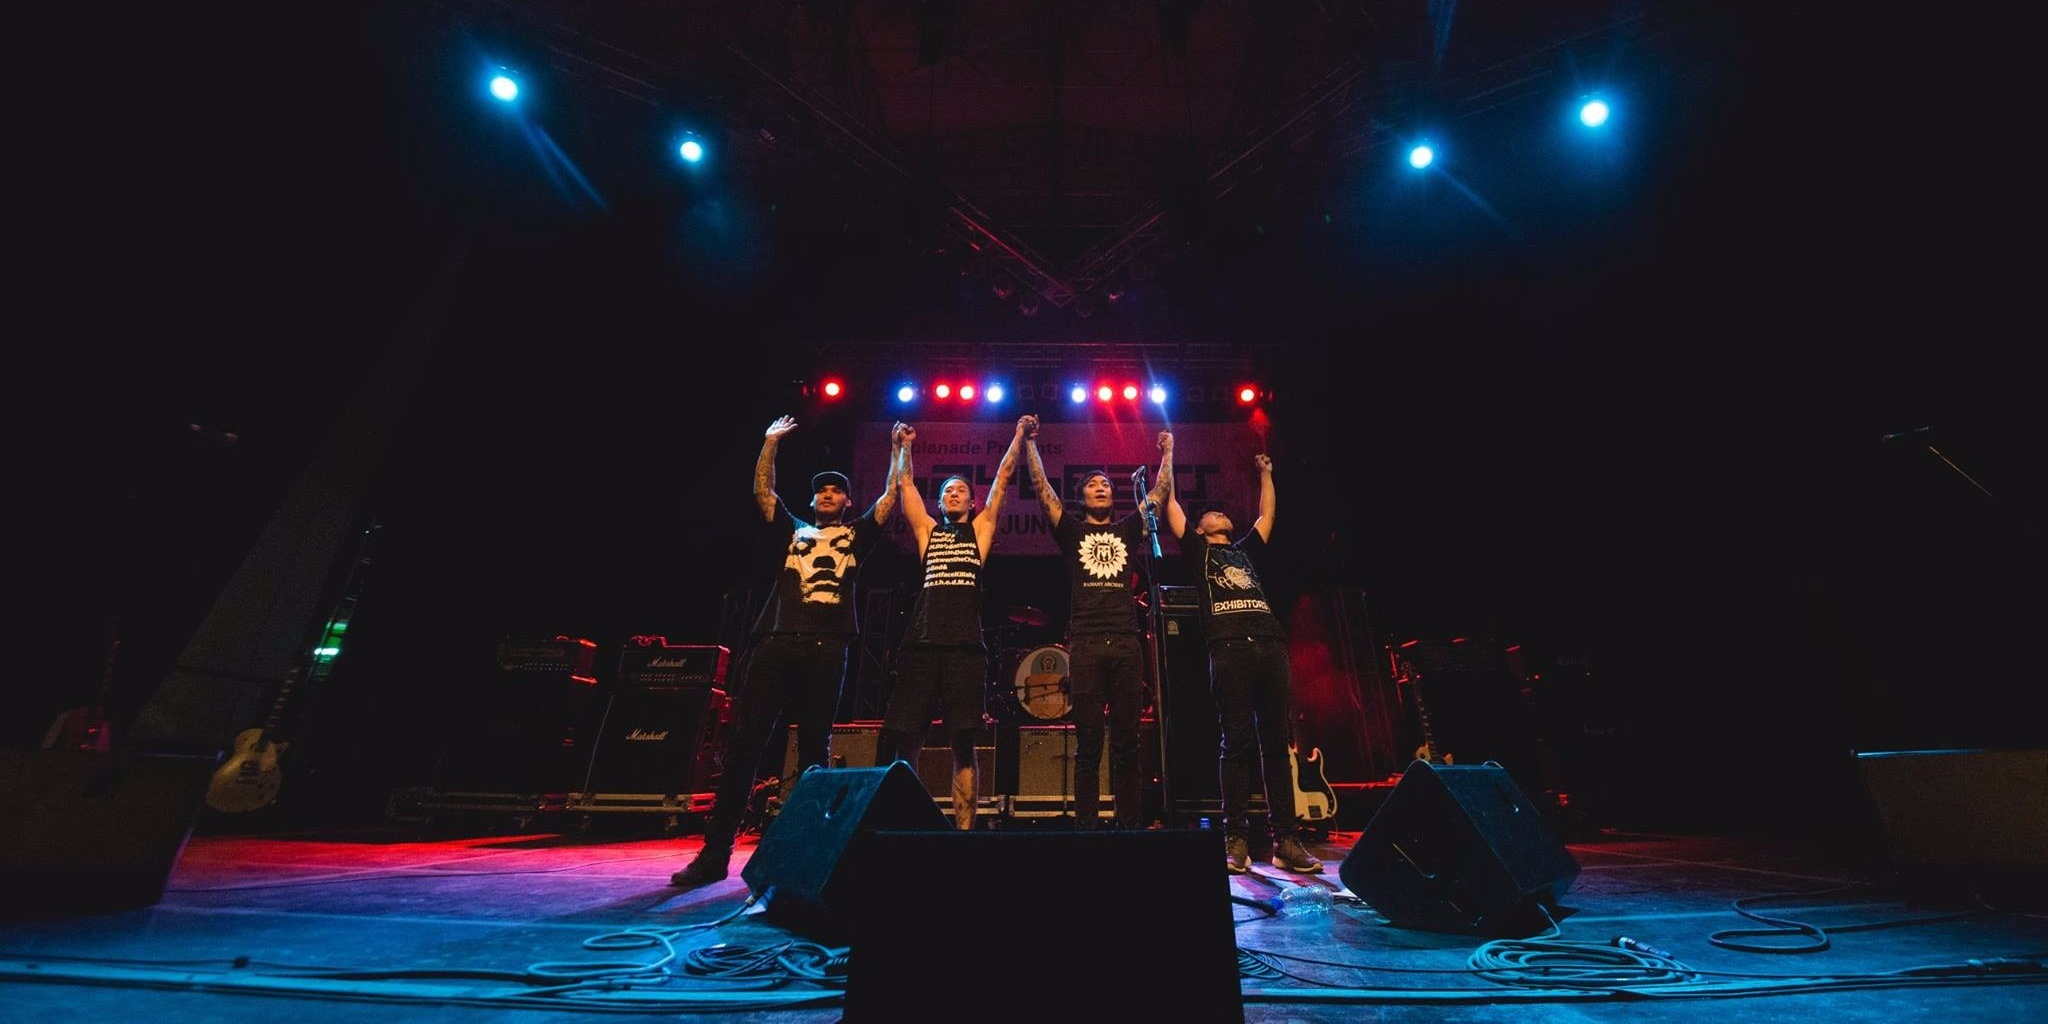 The Caulfield Cult invites you to their burial, bids farewell with one final show